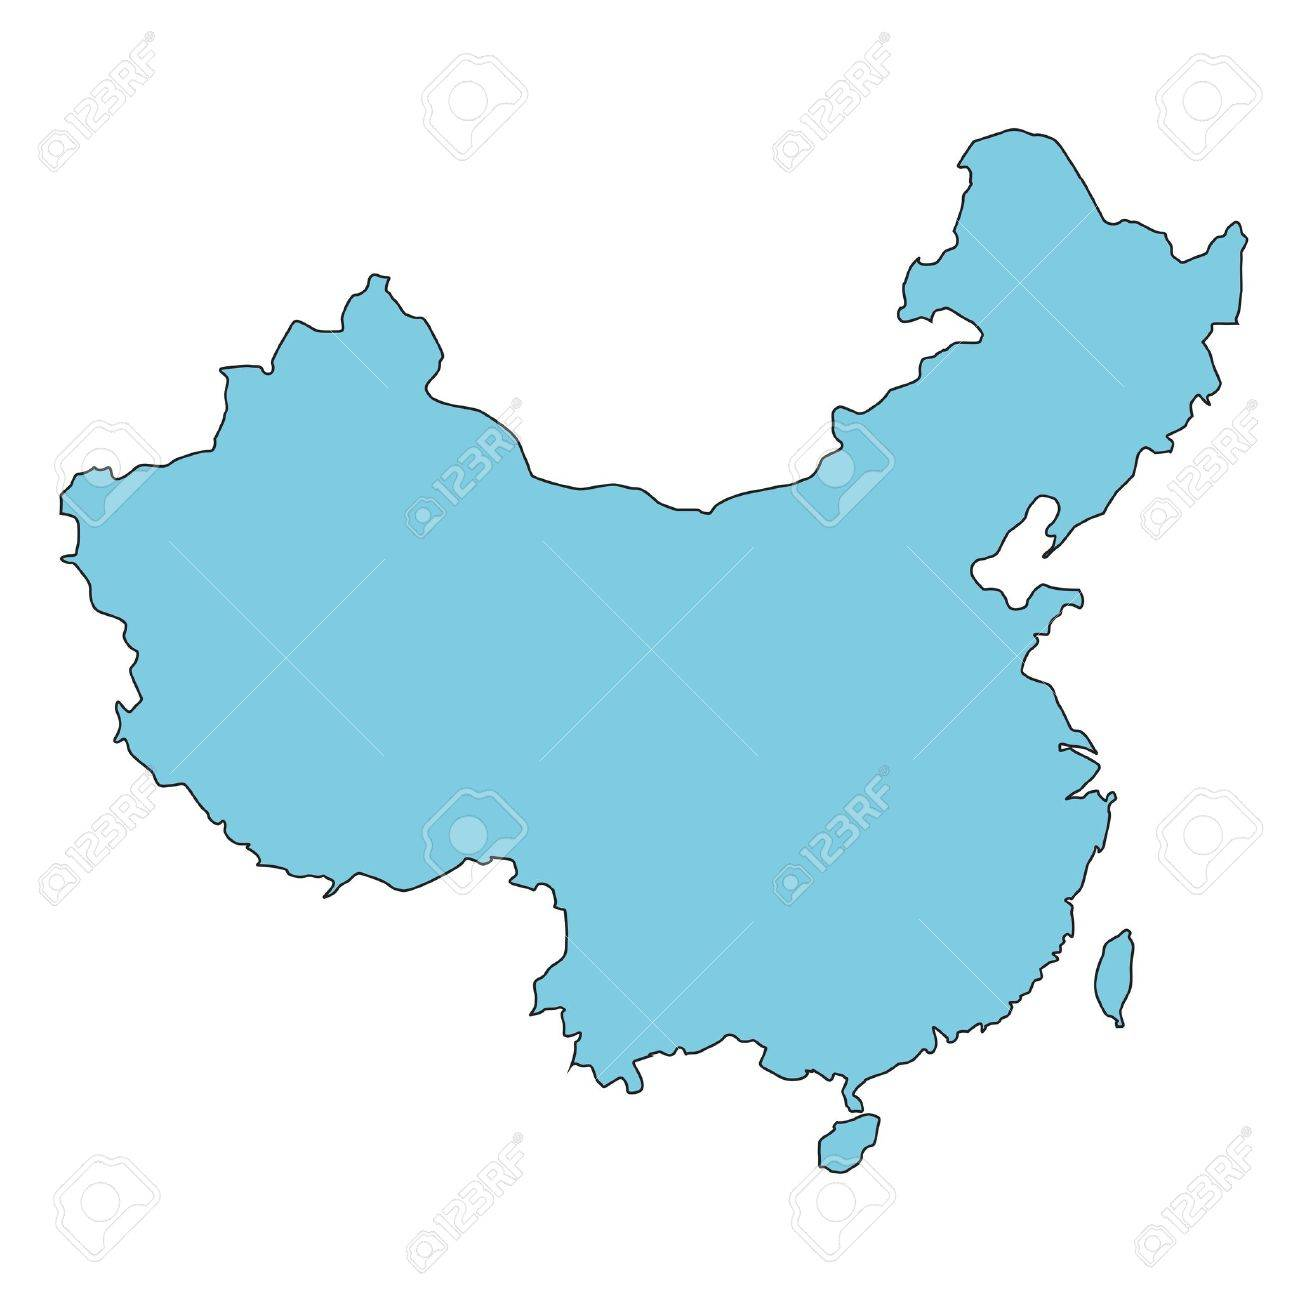 China clear map royalty free cliparts vectors and stock china clear map stock vector 11237744 gumiabroncs Choice Image